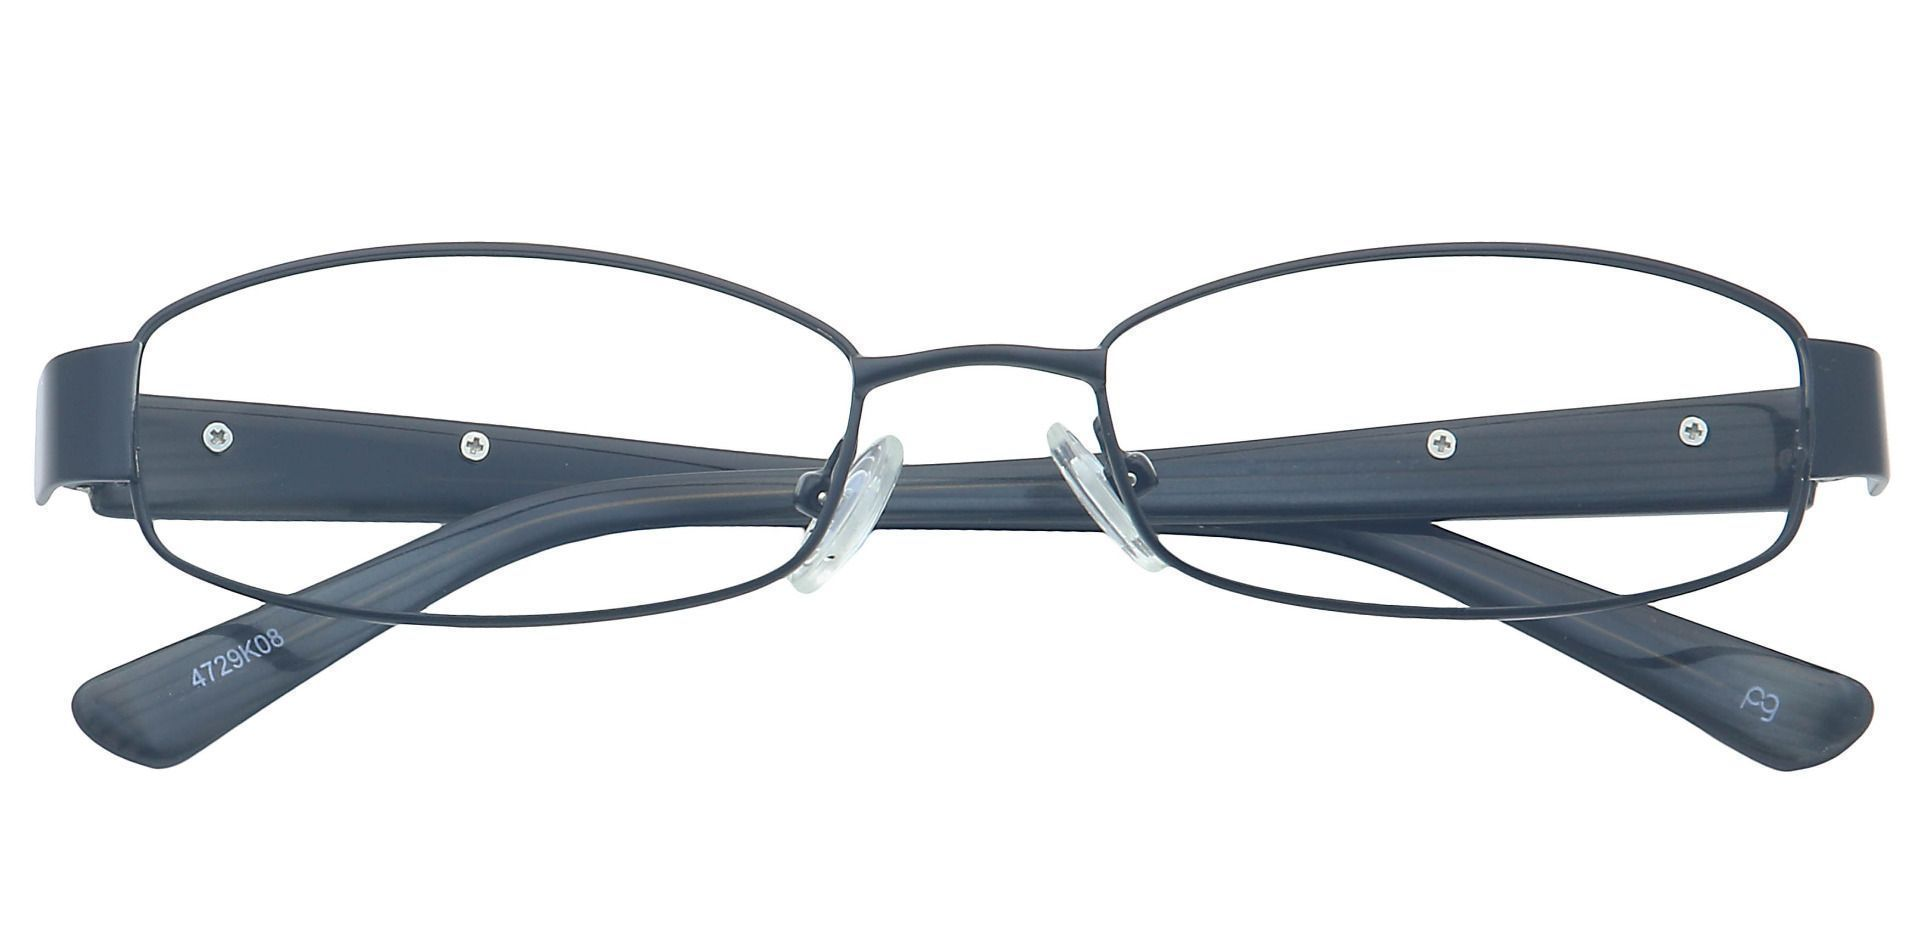 Genna Oval Eyeglasses Frame - Black